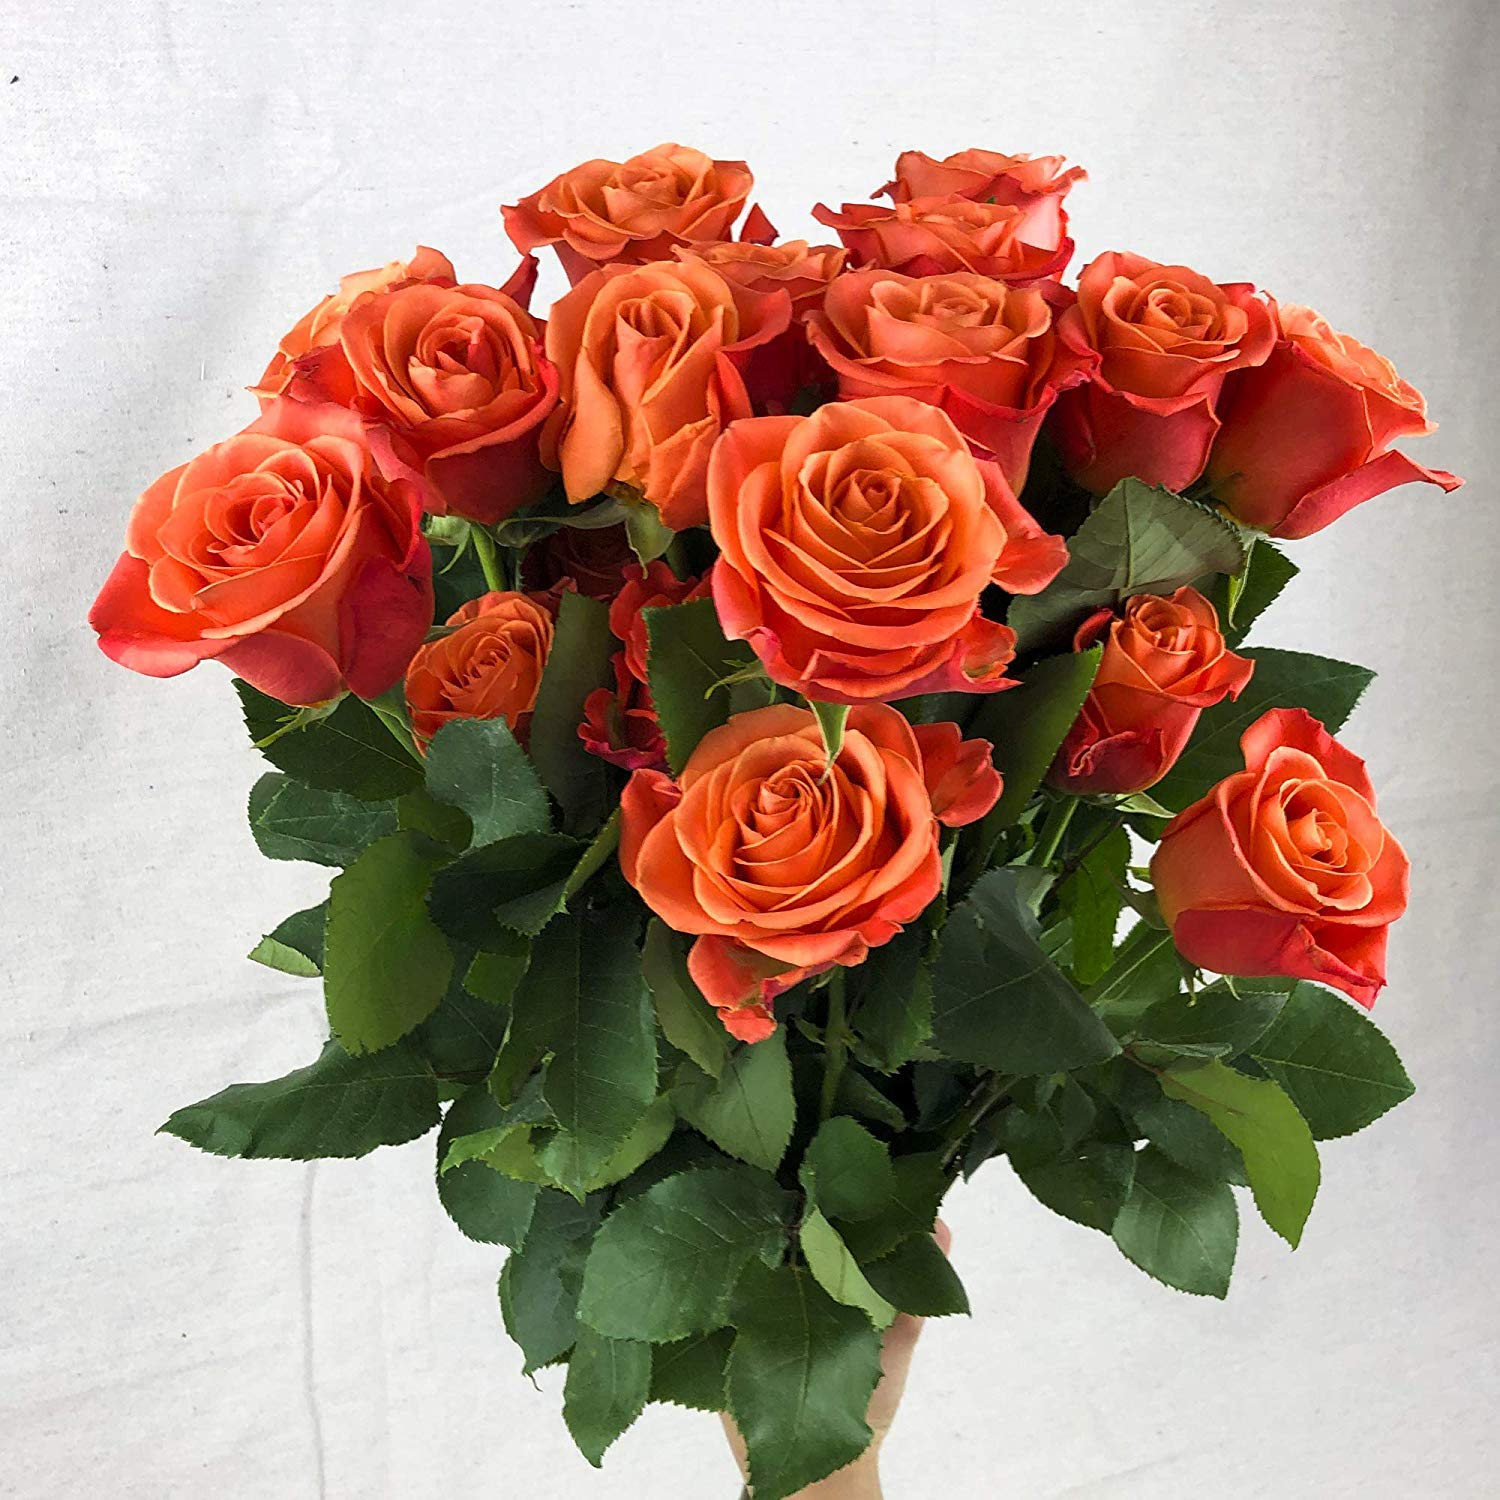 Greenchoice Flowers | 24 Orange Roses Fresh Cut Flowers | Fresh Bulk Flowers | Birthday Flowers | (2 Dozen) - 20 inch Long Stem Flower Cut Direct from Farm